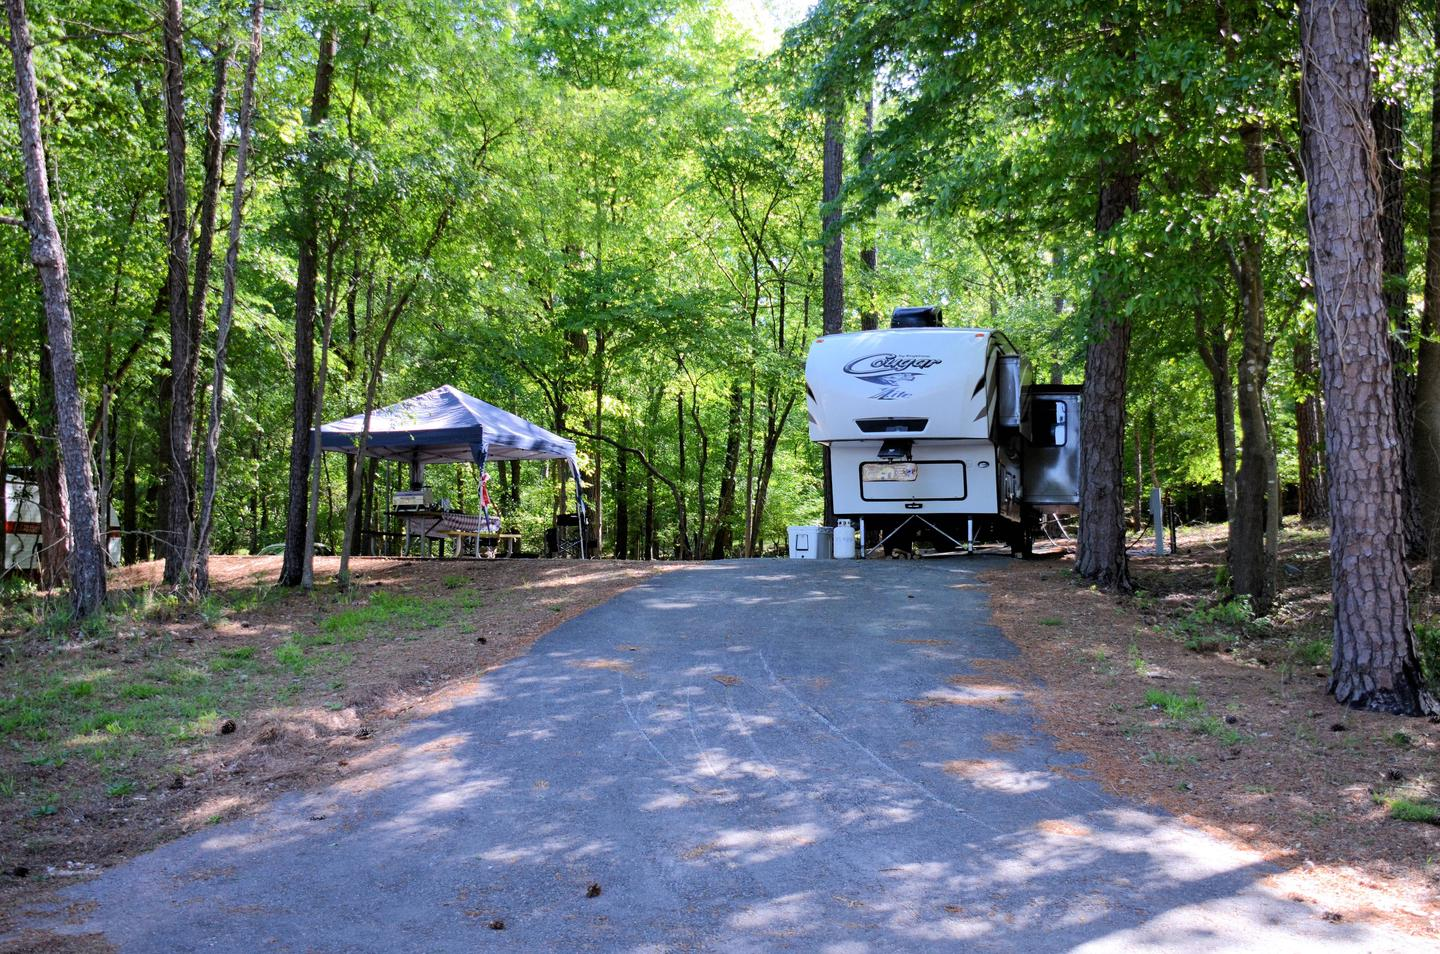 Driveway (pull-thru), utilities-side clearance.McKinney Campground, campsite 32